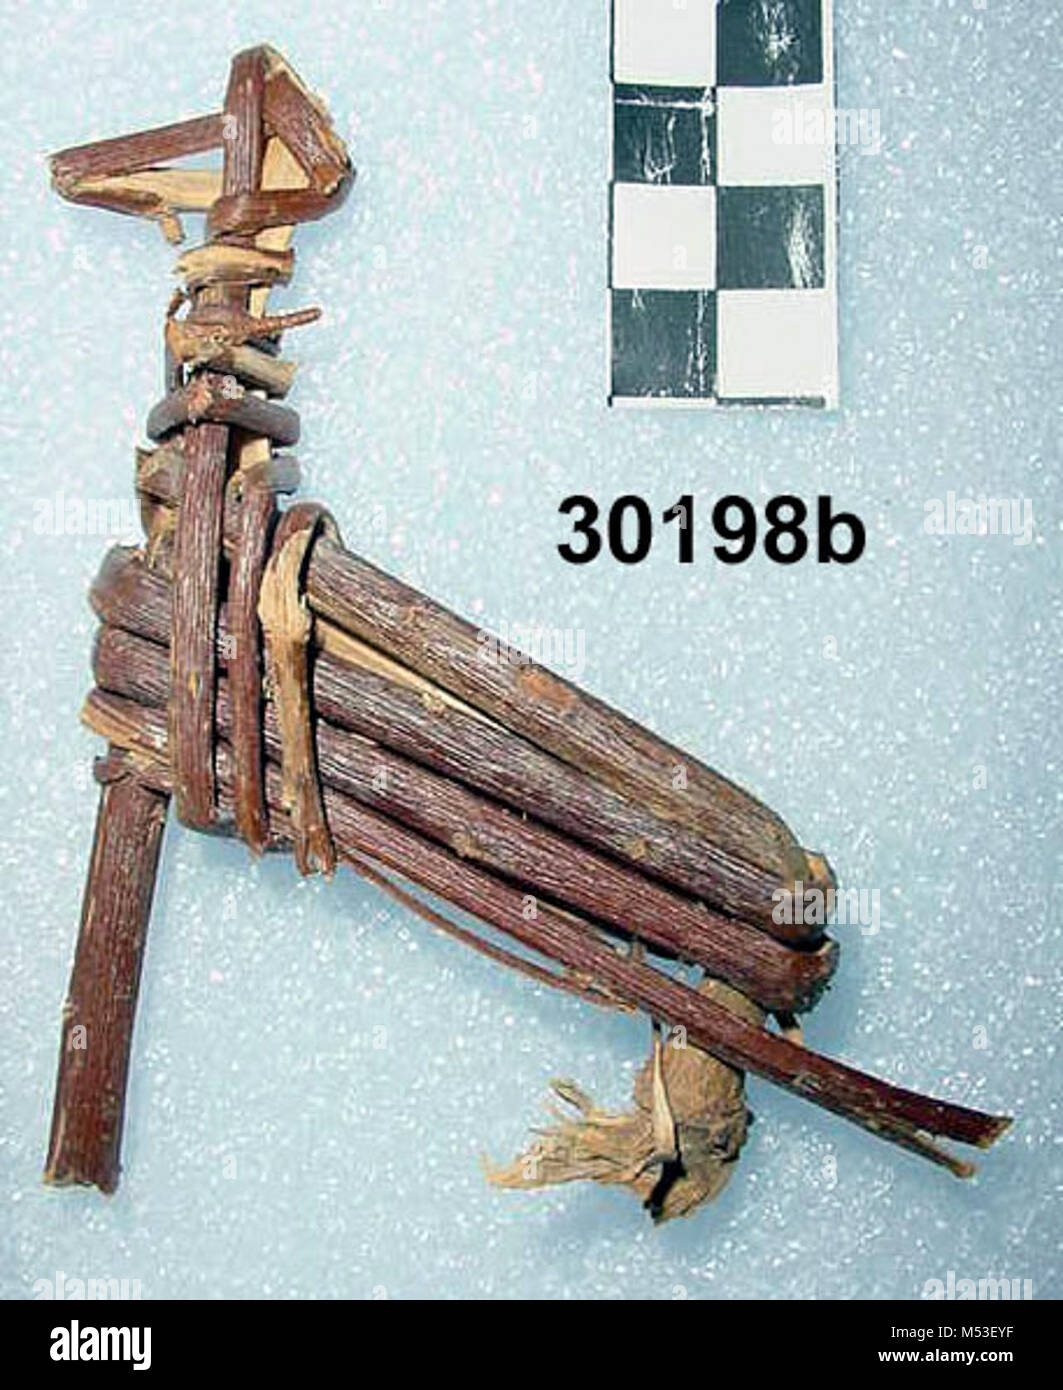 Split-Twig Figurine GRCAb. Some of the most facinating artifacts found here in the Grand Canyon are split-twig figurines. - Stock Image